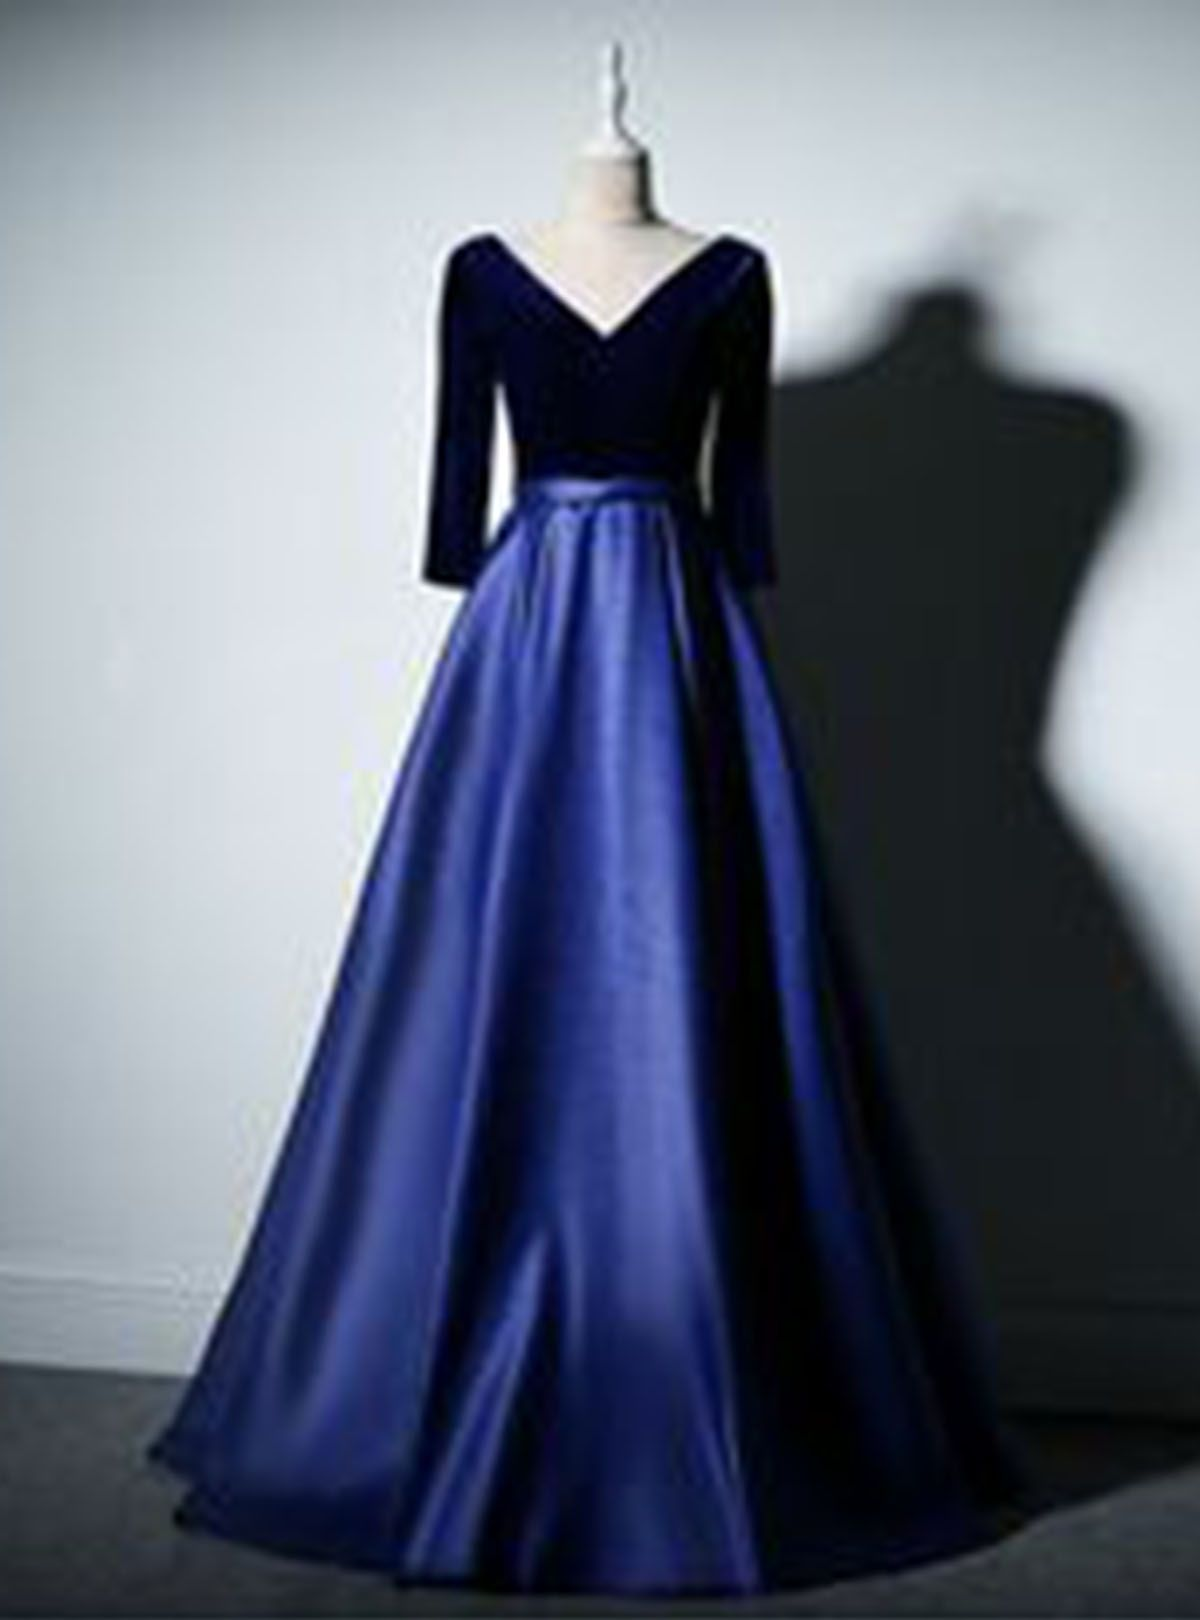 69d2845f00e Navy blue satin prom dress long evening gown  promdress  promdresses  prom   gowns